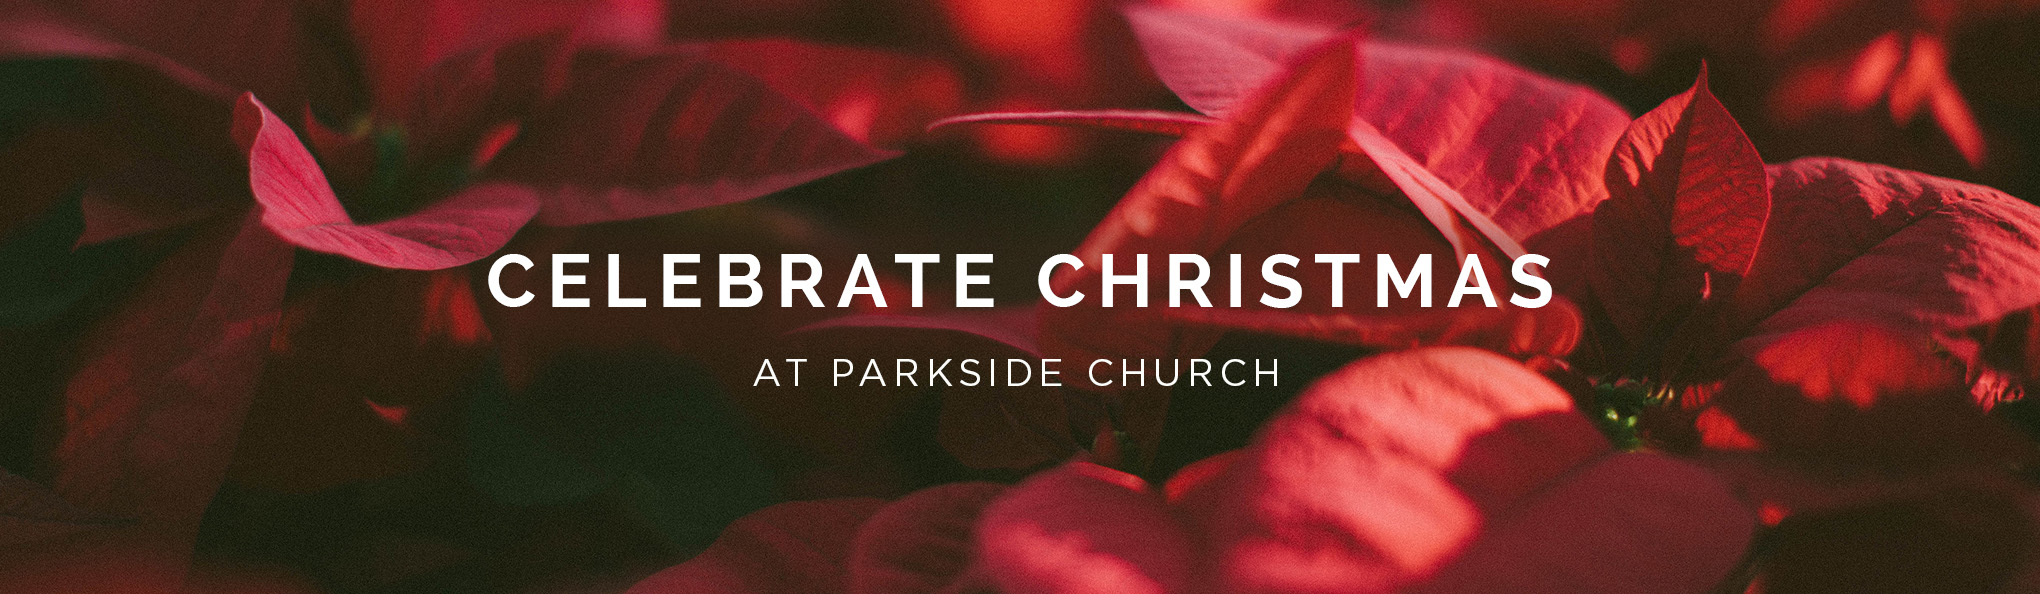 Parkside Church Christmas Concert 2020 Christmas at Parkside | Parkside Church